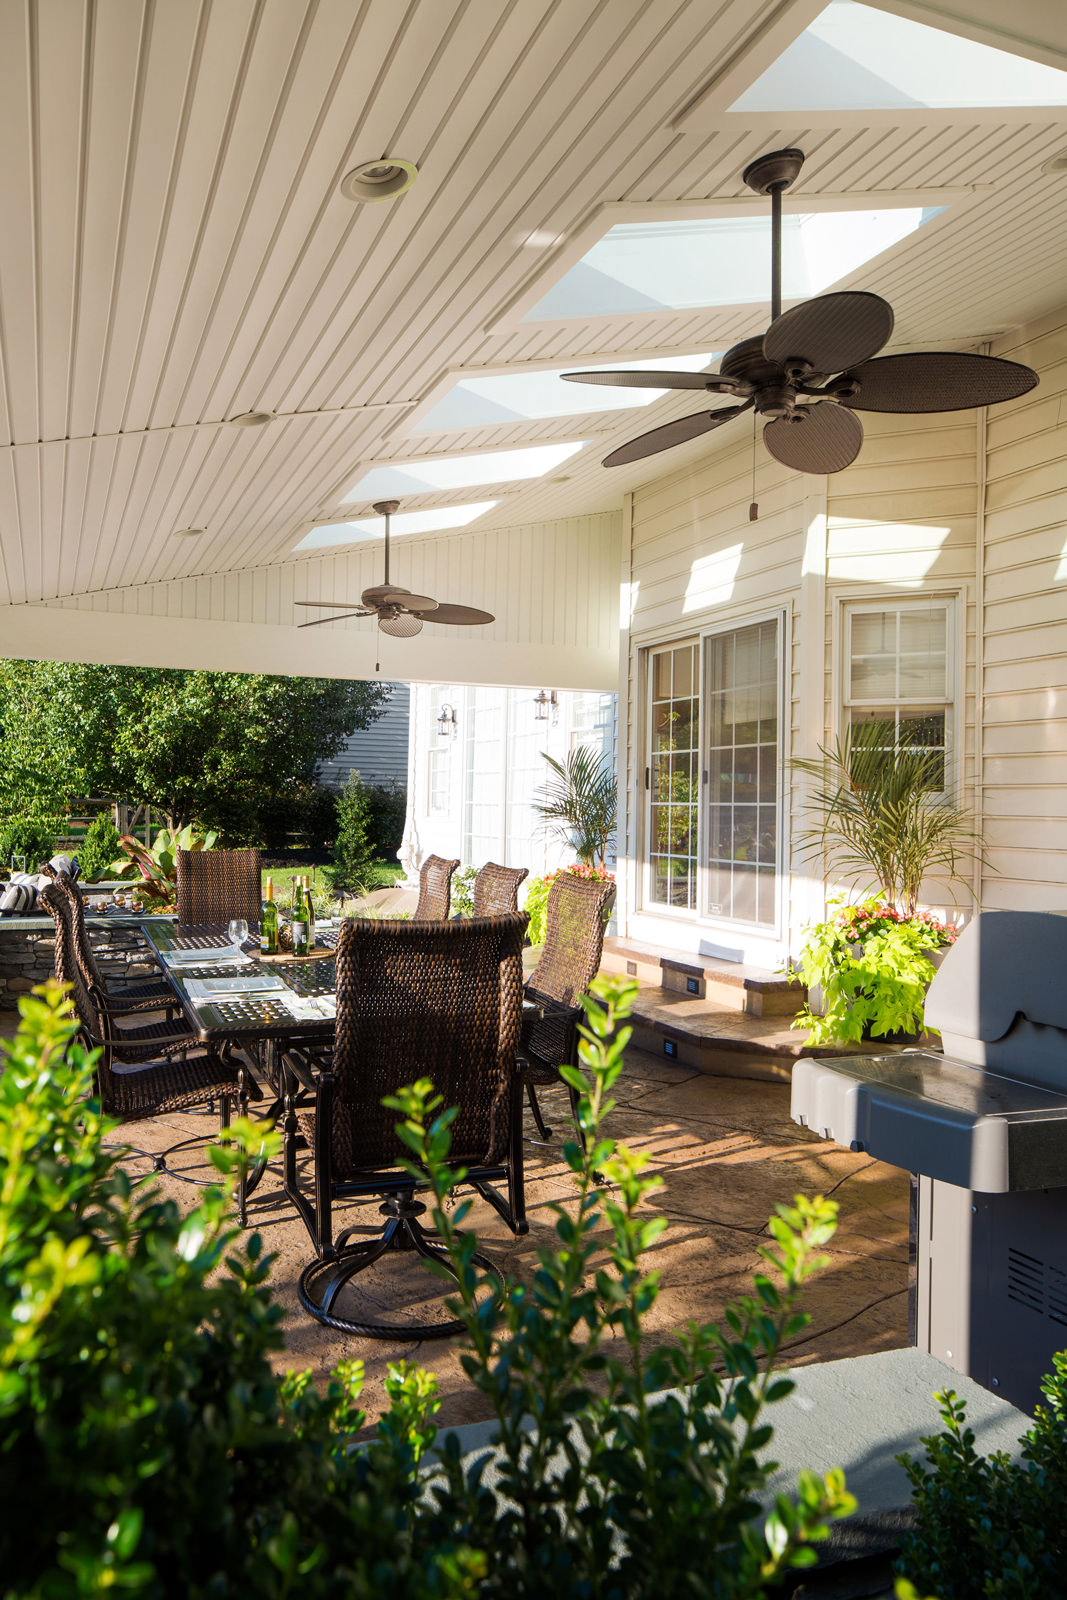 Incorporating skylights into our roof systems is a great way to allow natural light back into the home, and the ceiling fans add a nice breeze to the space at the same time.